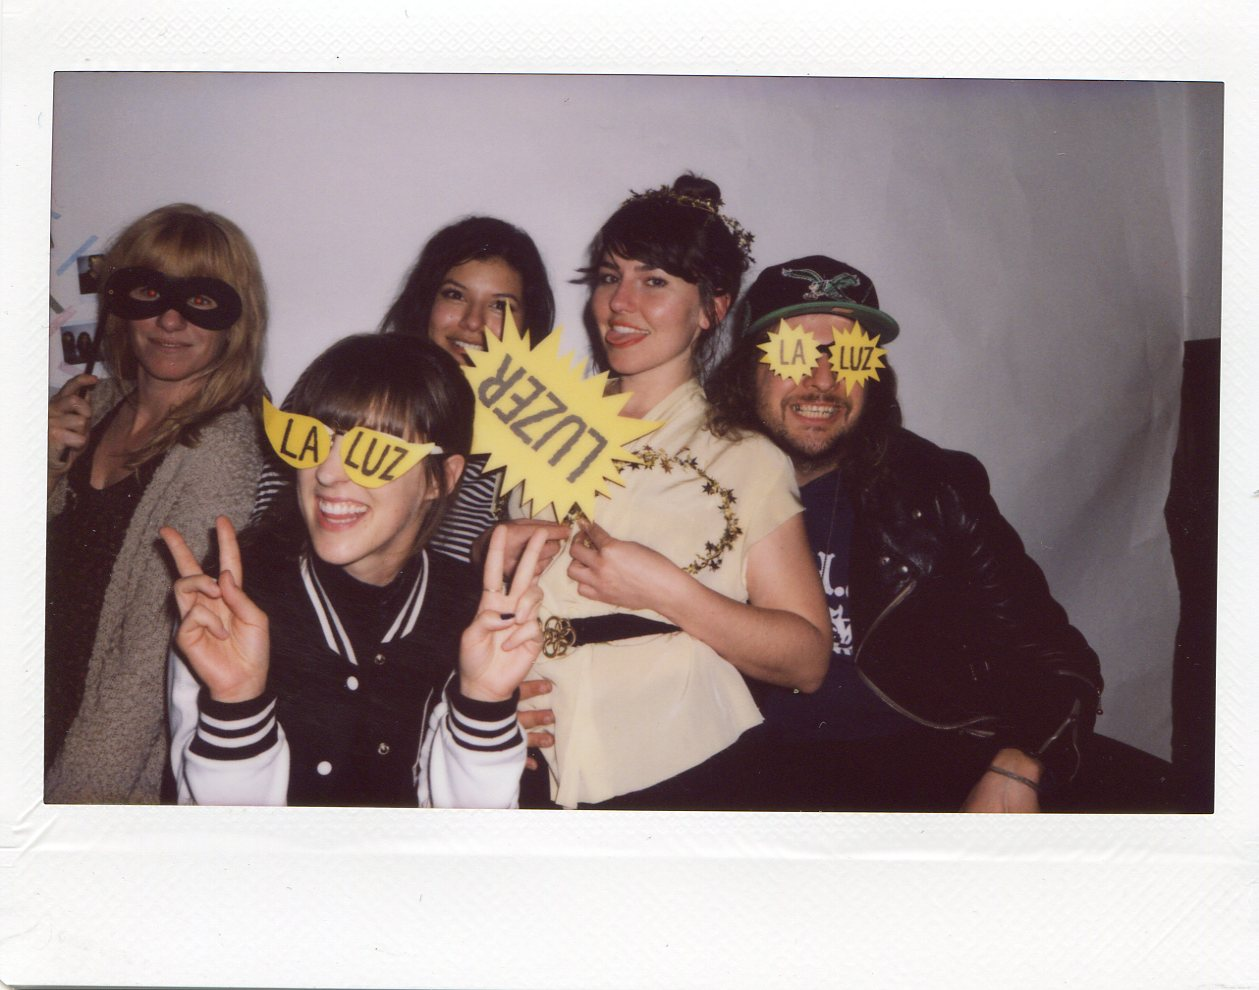 Jenn from Upset, Allie from Peach Kelli Pop, Mukta, Amy, and Kyle from King Tuff